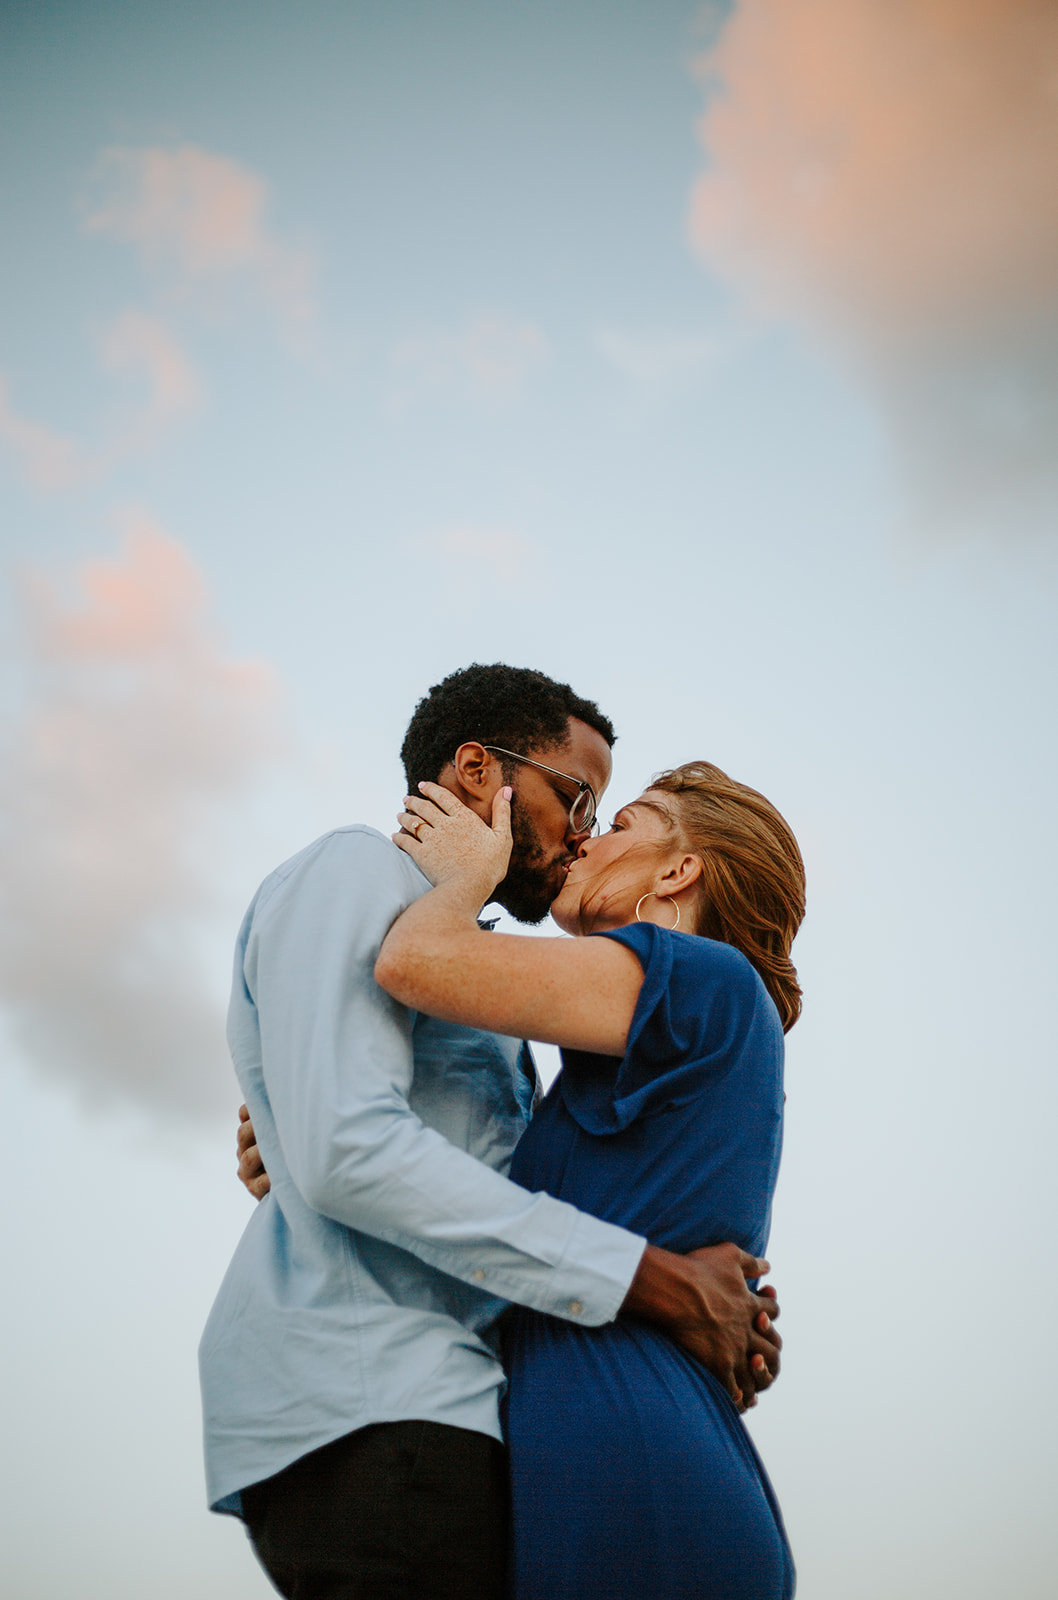 Couple holding in each other while kissing with the sky in the background during their Chicago engagement session